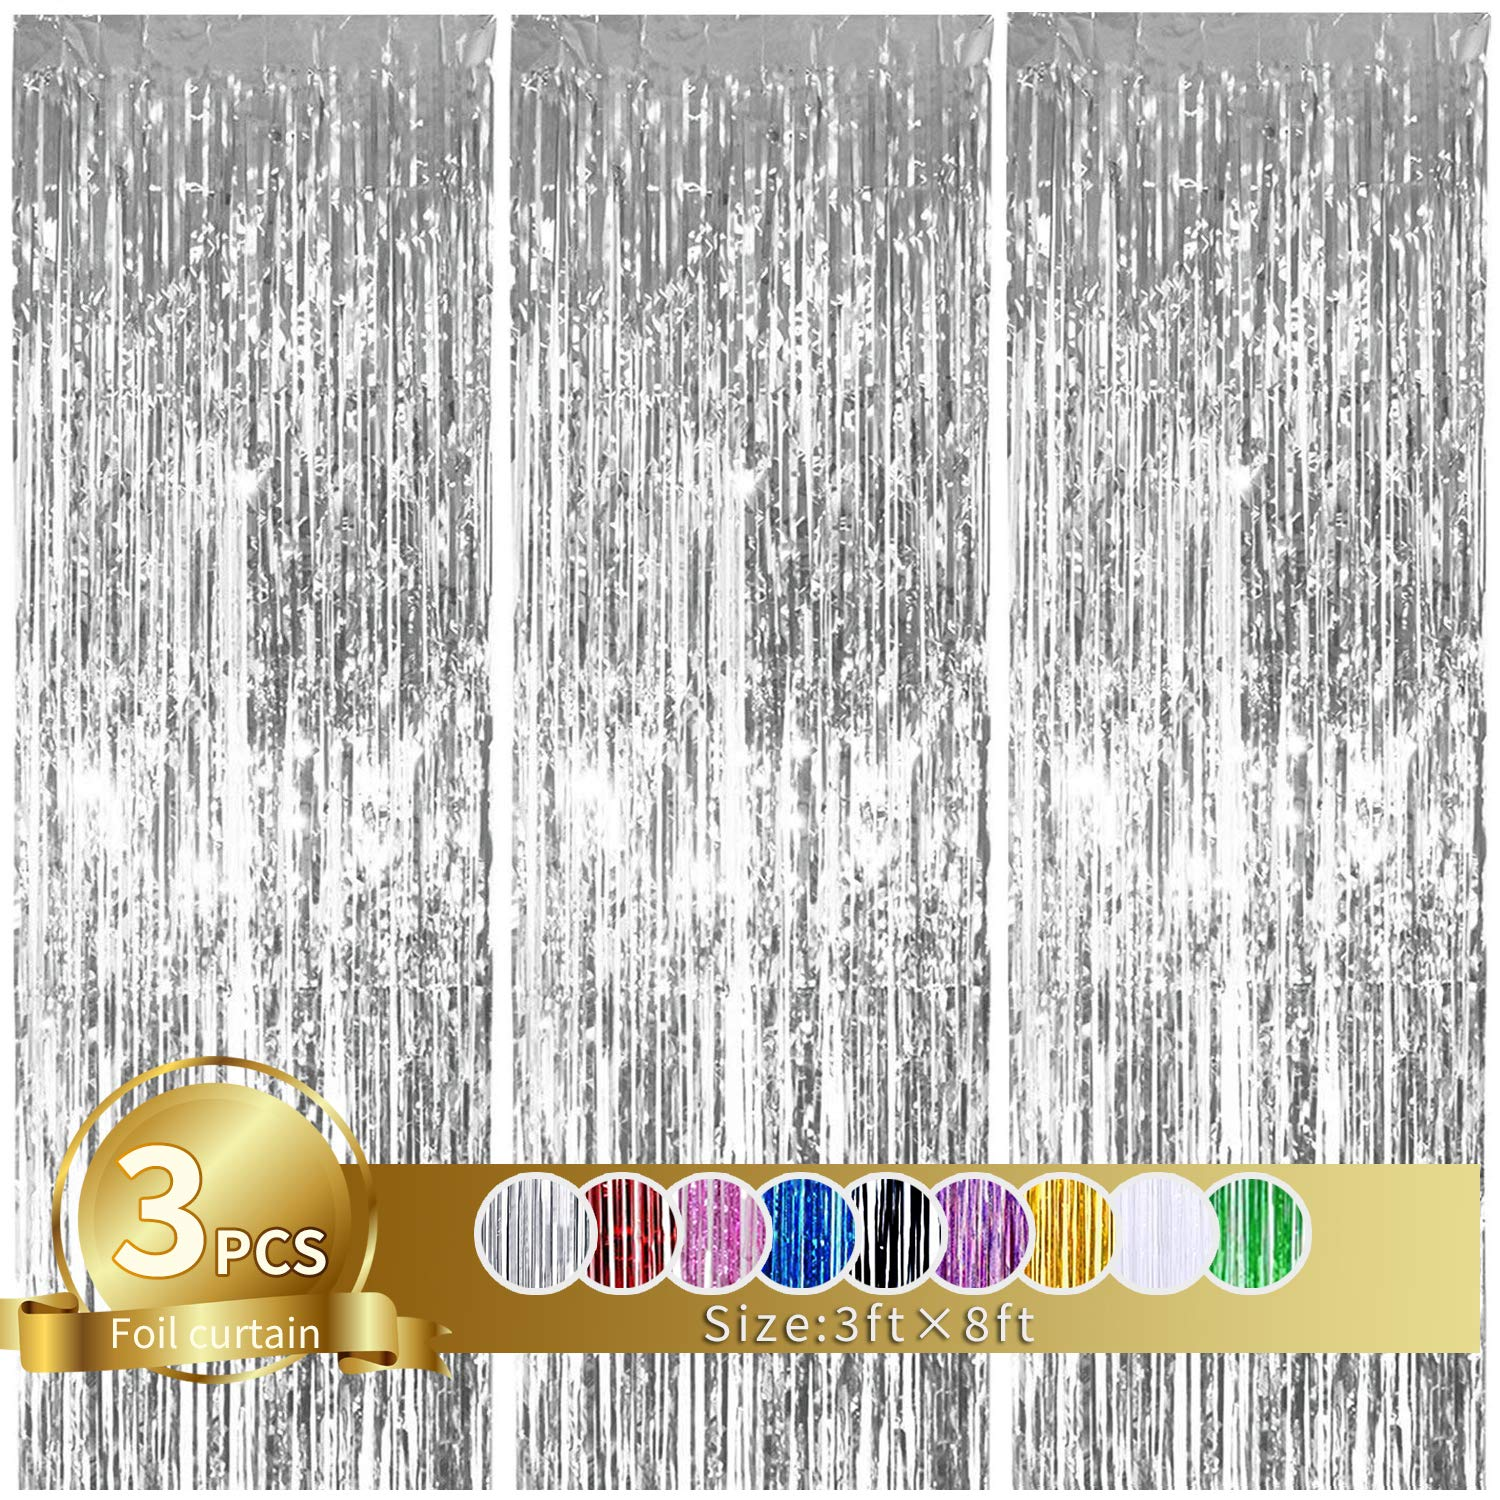 3Pcs Silver Metallic Tinsel Foil Fringe Curtains,3.28ft x 6.56ft Silver Photo Booth Backdrop Curtain,Photo Booth Props,Ideal for Bachelorette,Birthday,Graduation, Christmas,New Year Party Decorations